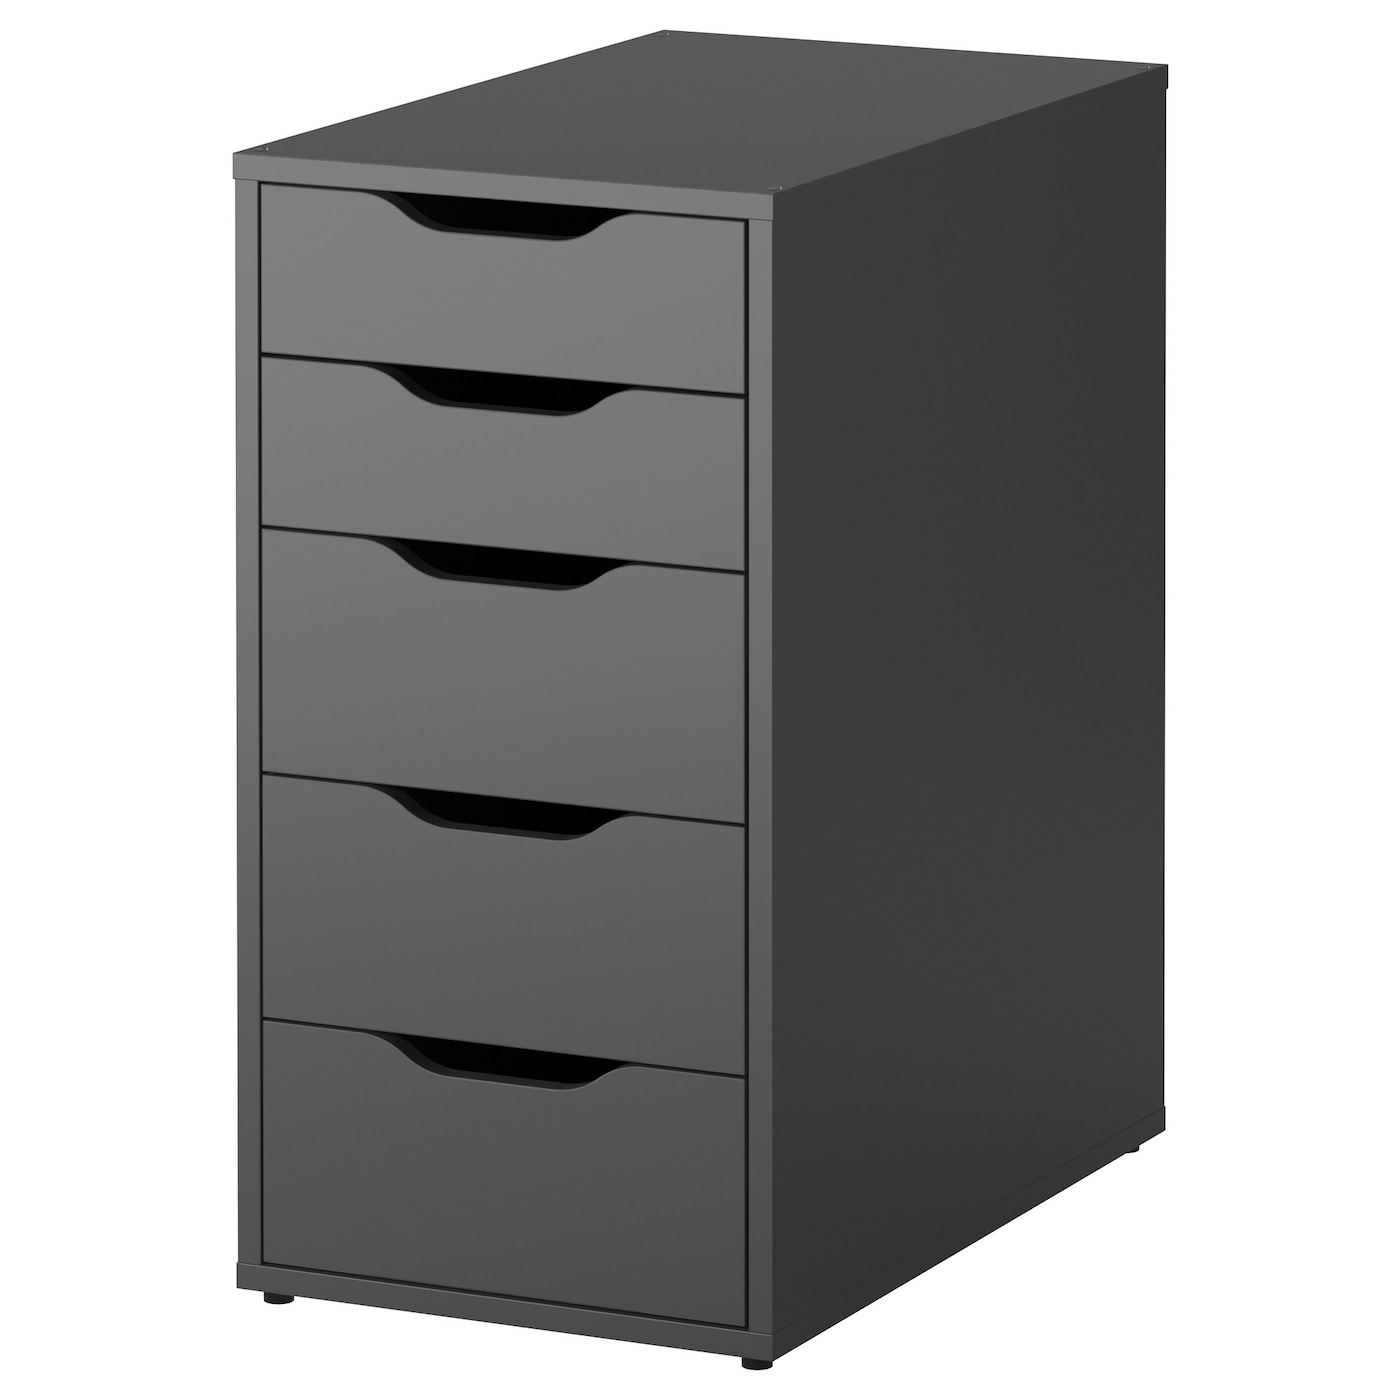 alex drawer unit grey 36x70 cm ikea